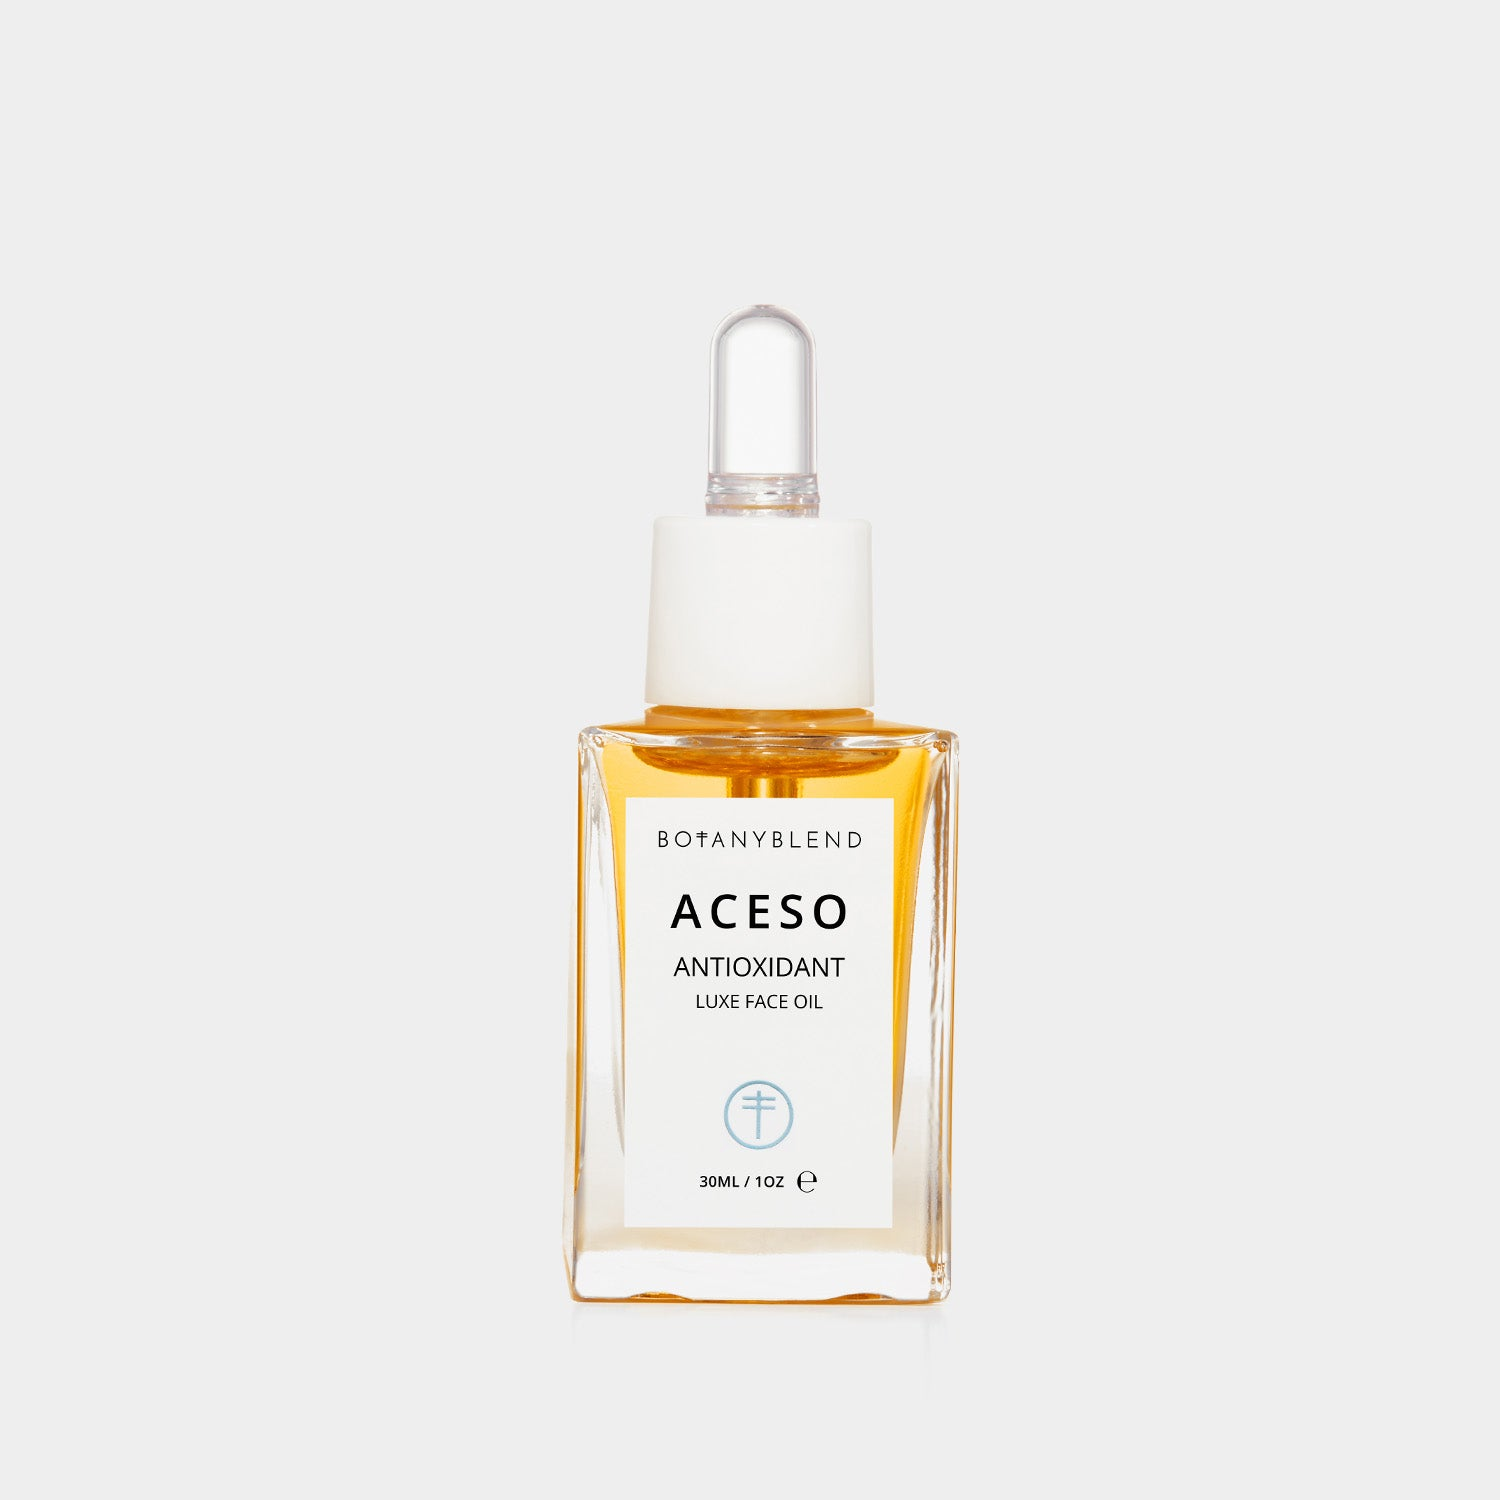 ACESO Antioxidant Facial Oil